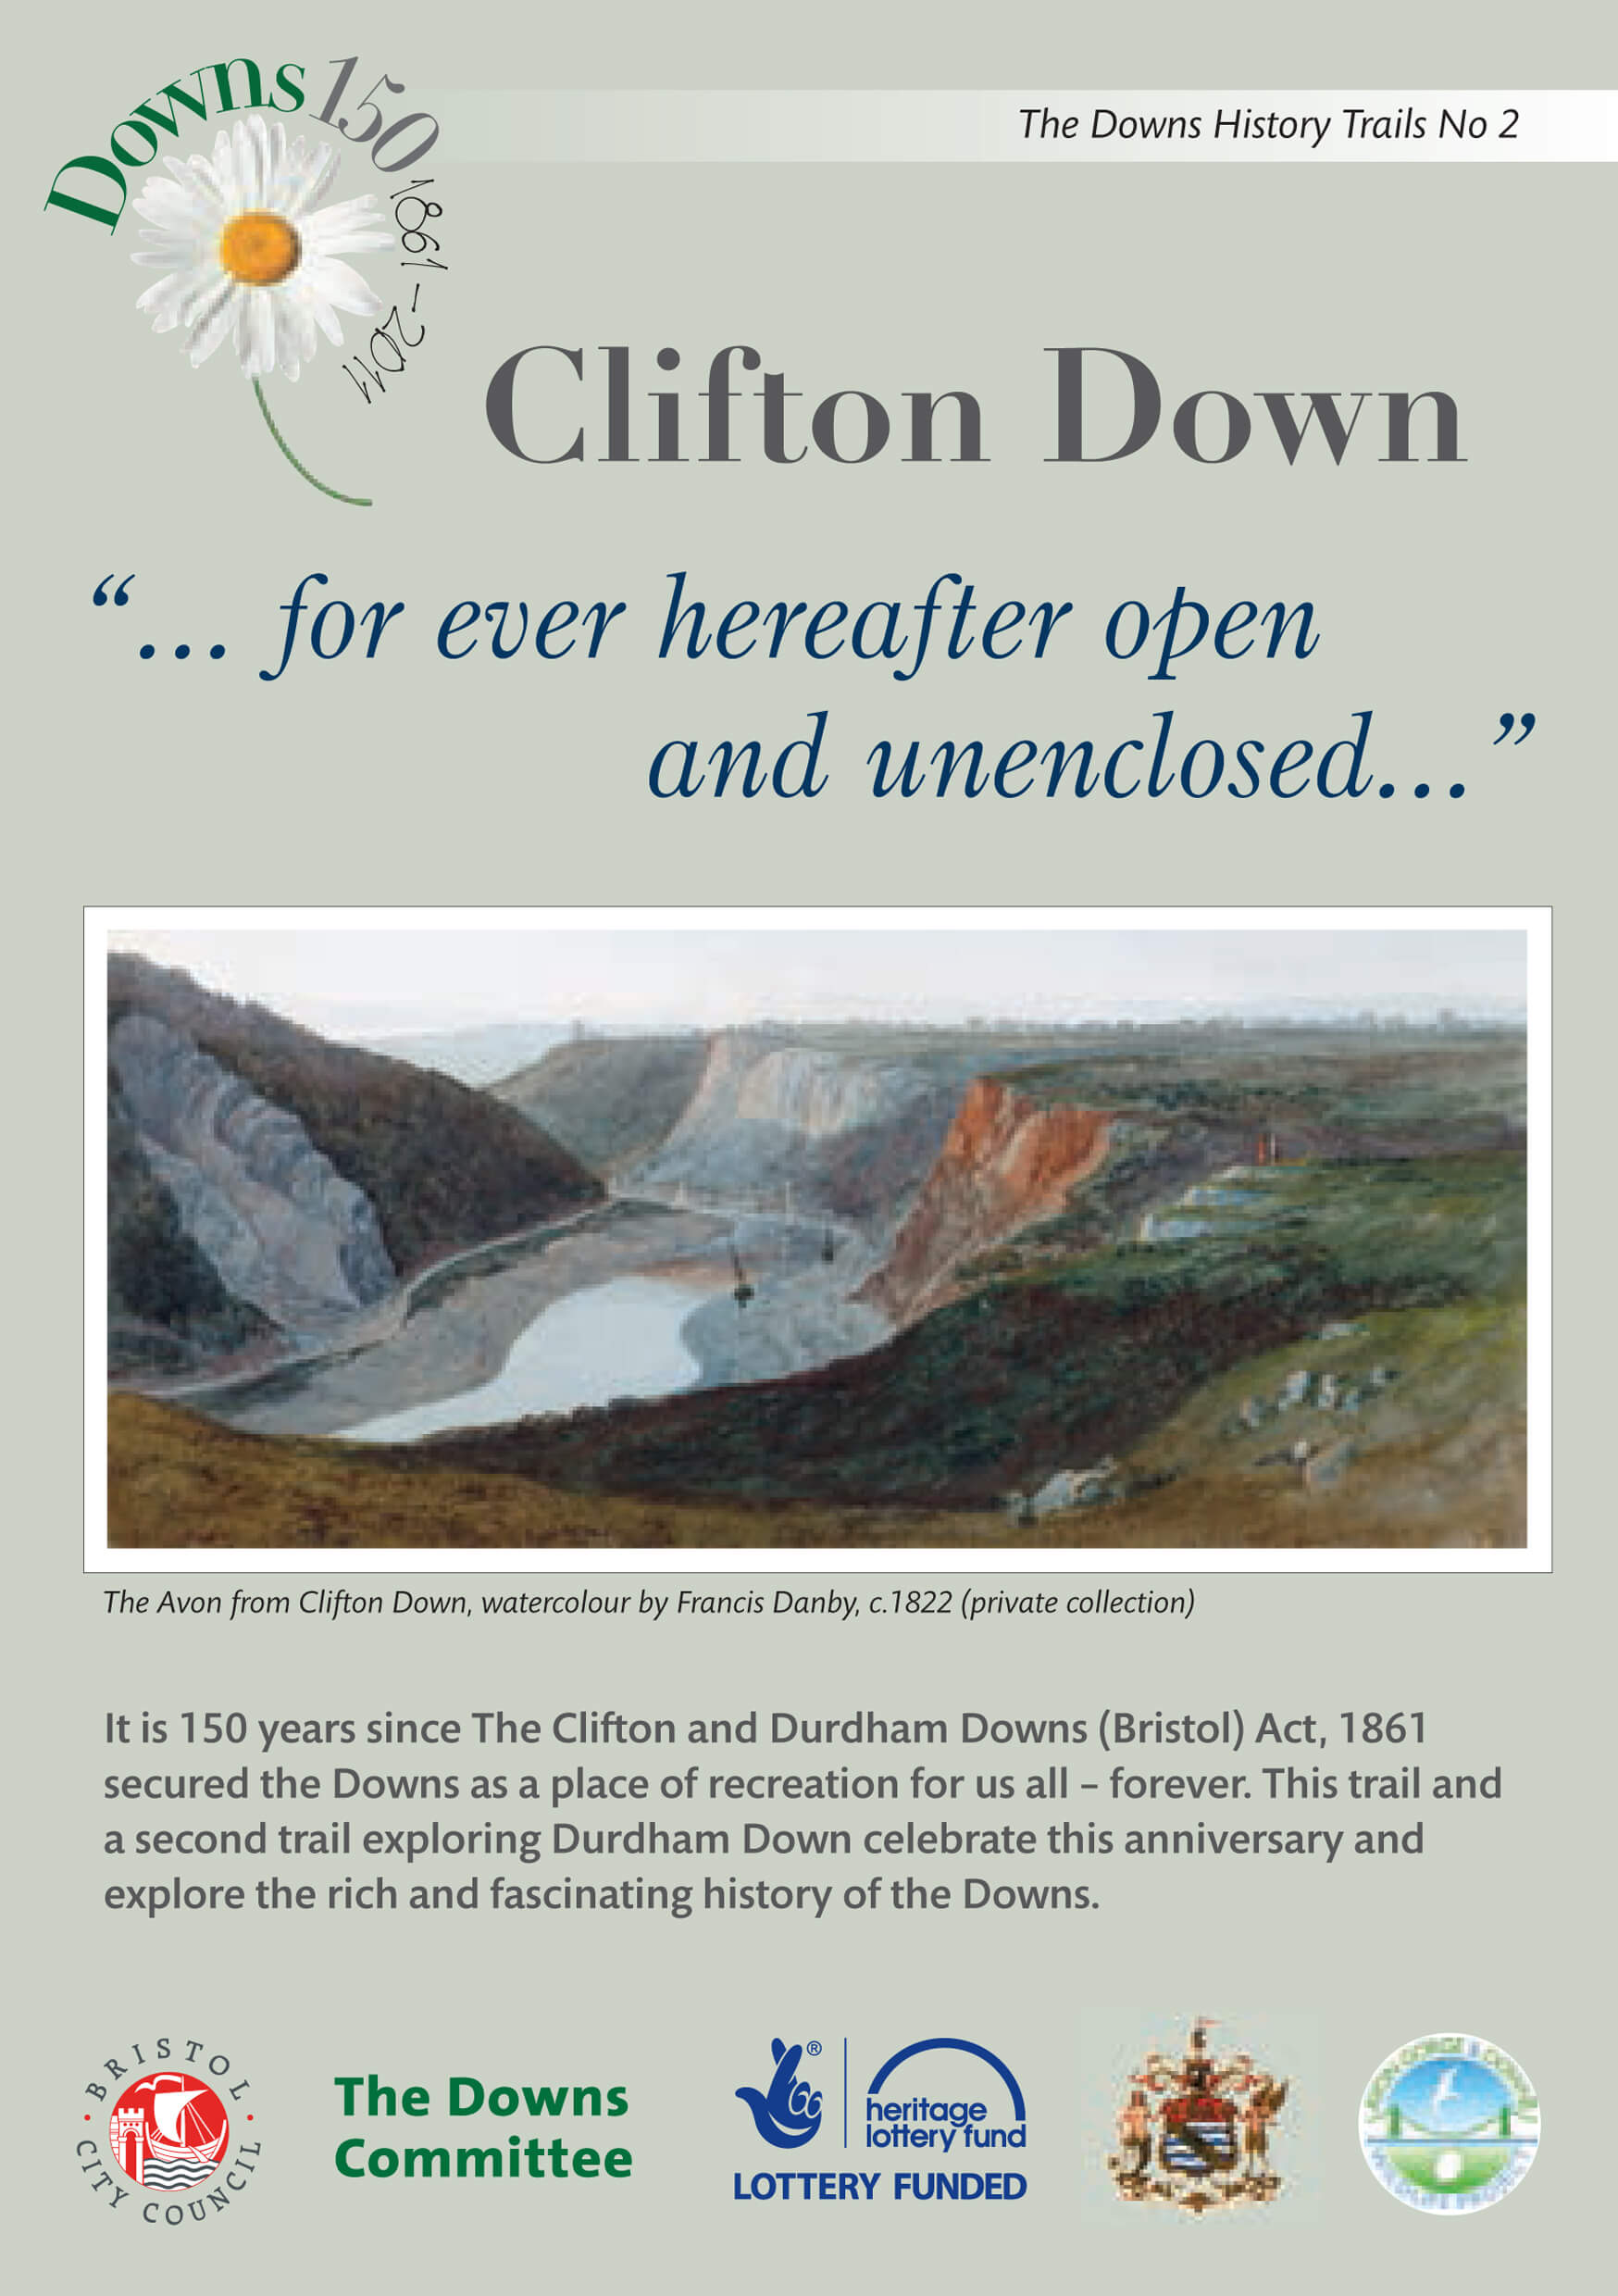 Clifton Down history trail download leaflet